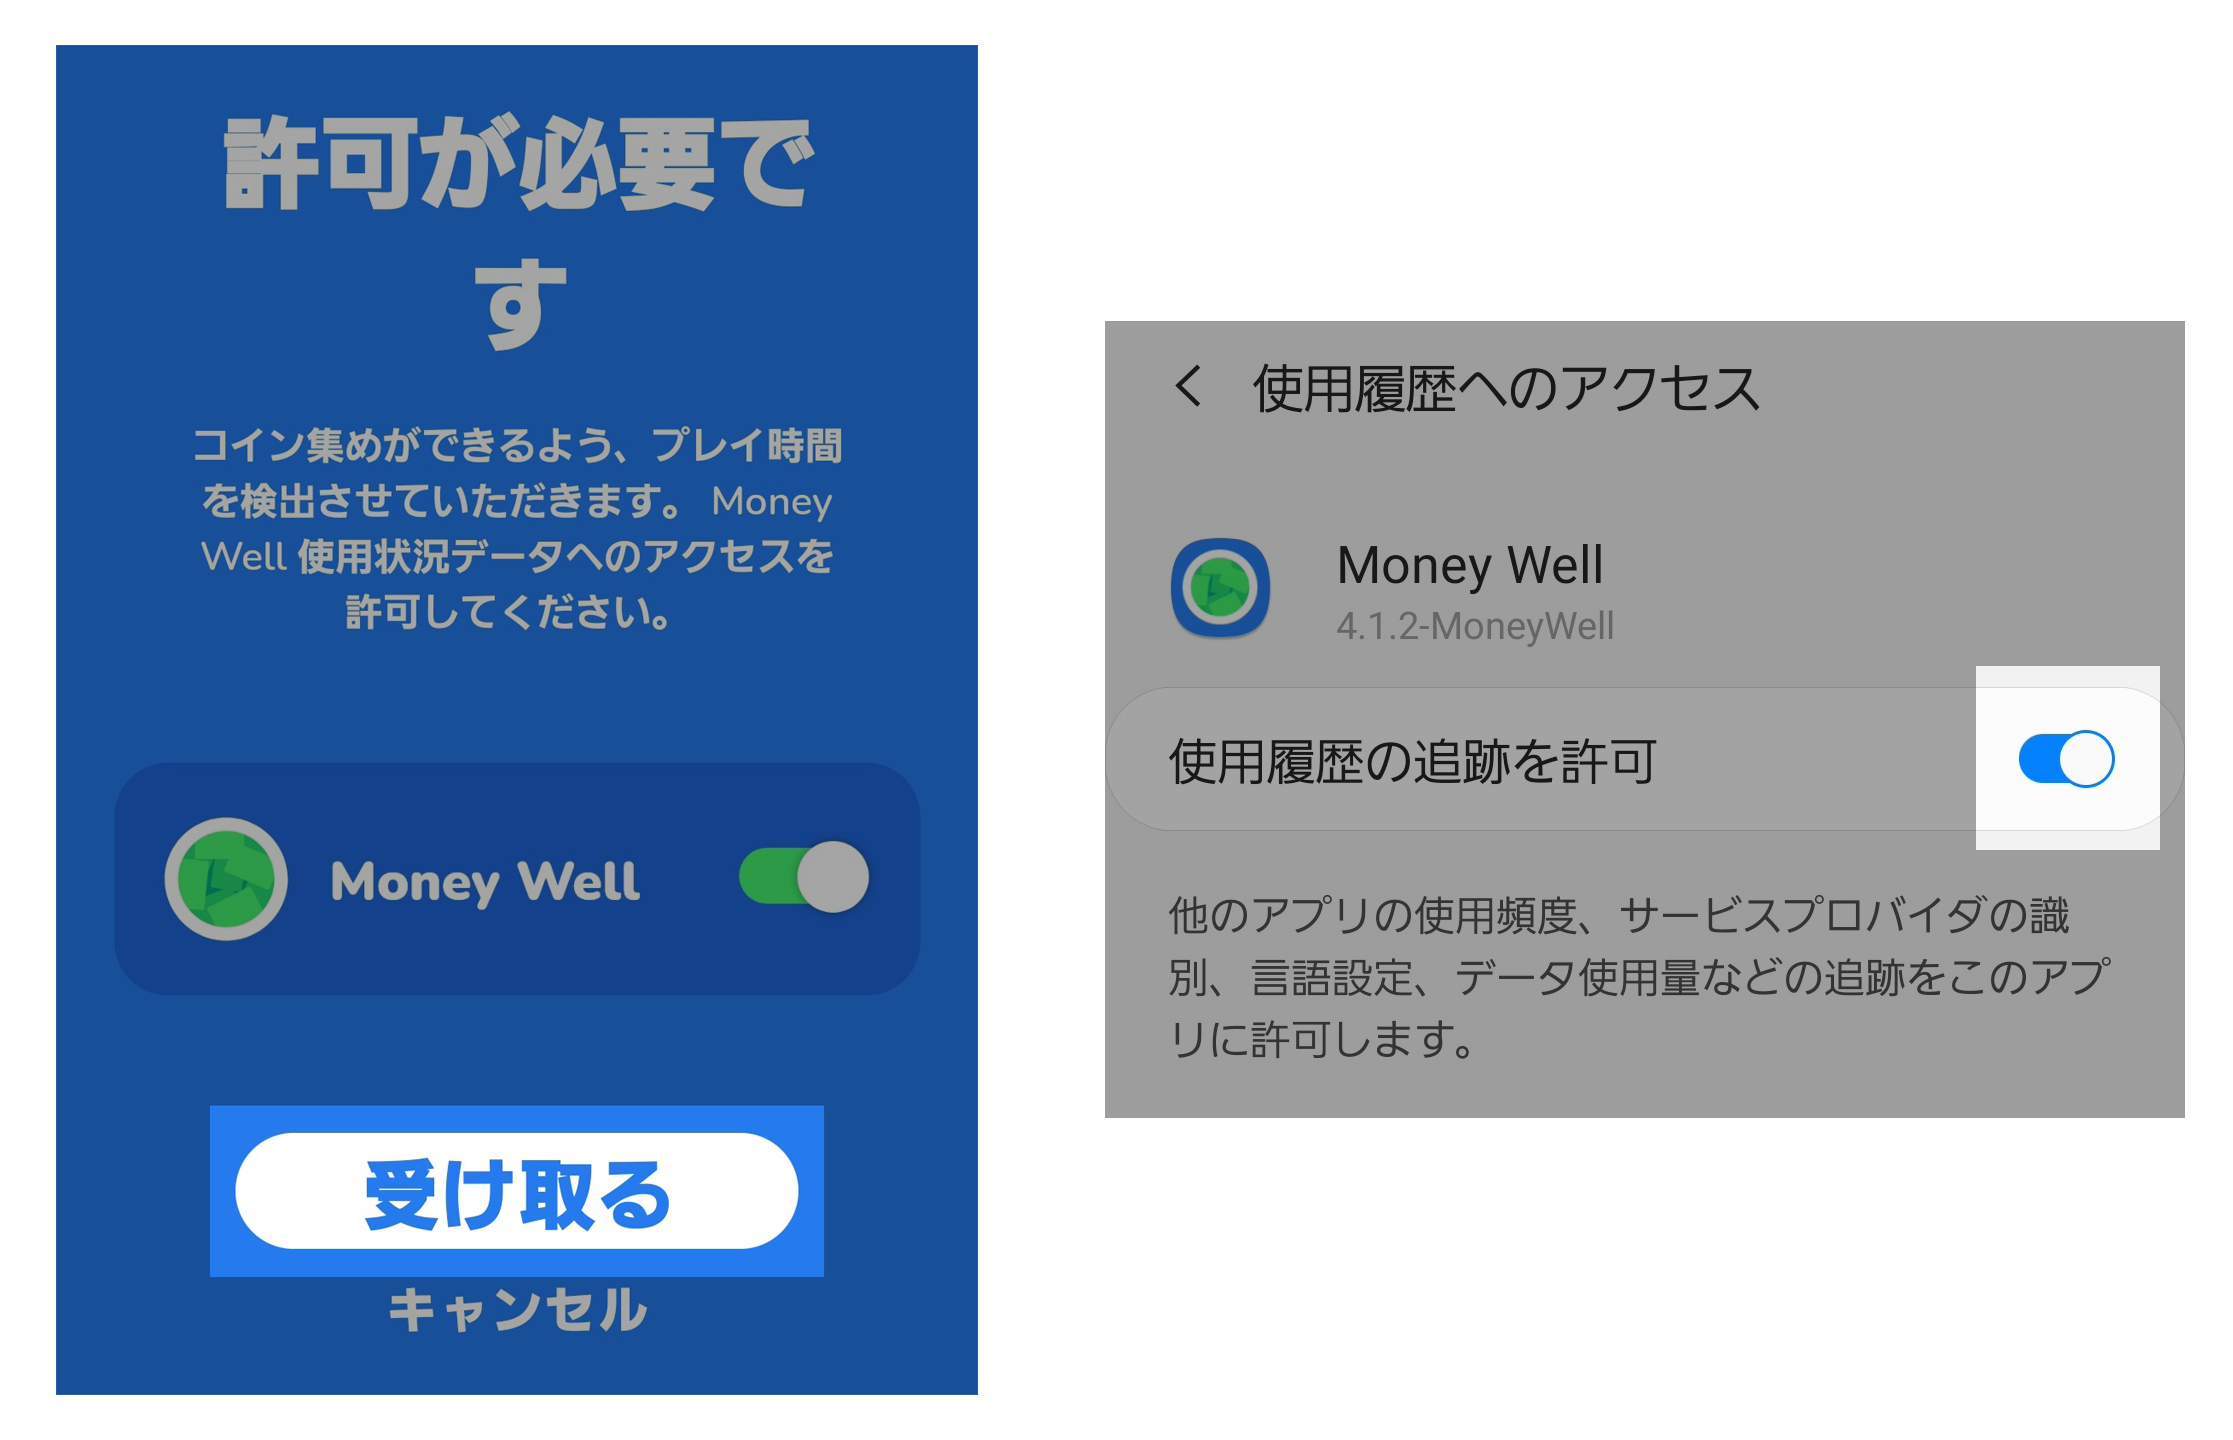 Money Well,使用履歴の追跡の許可